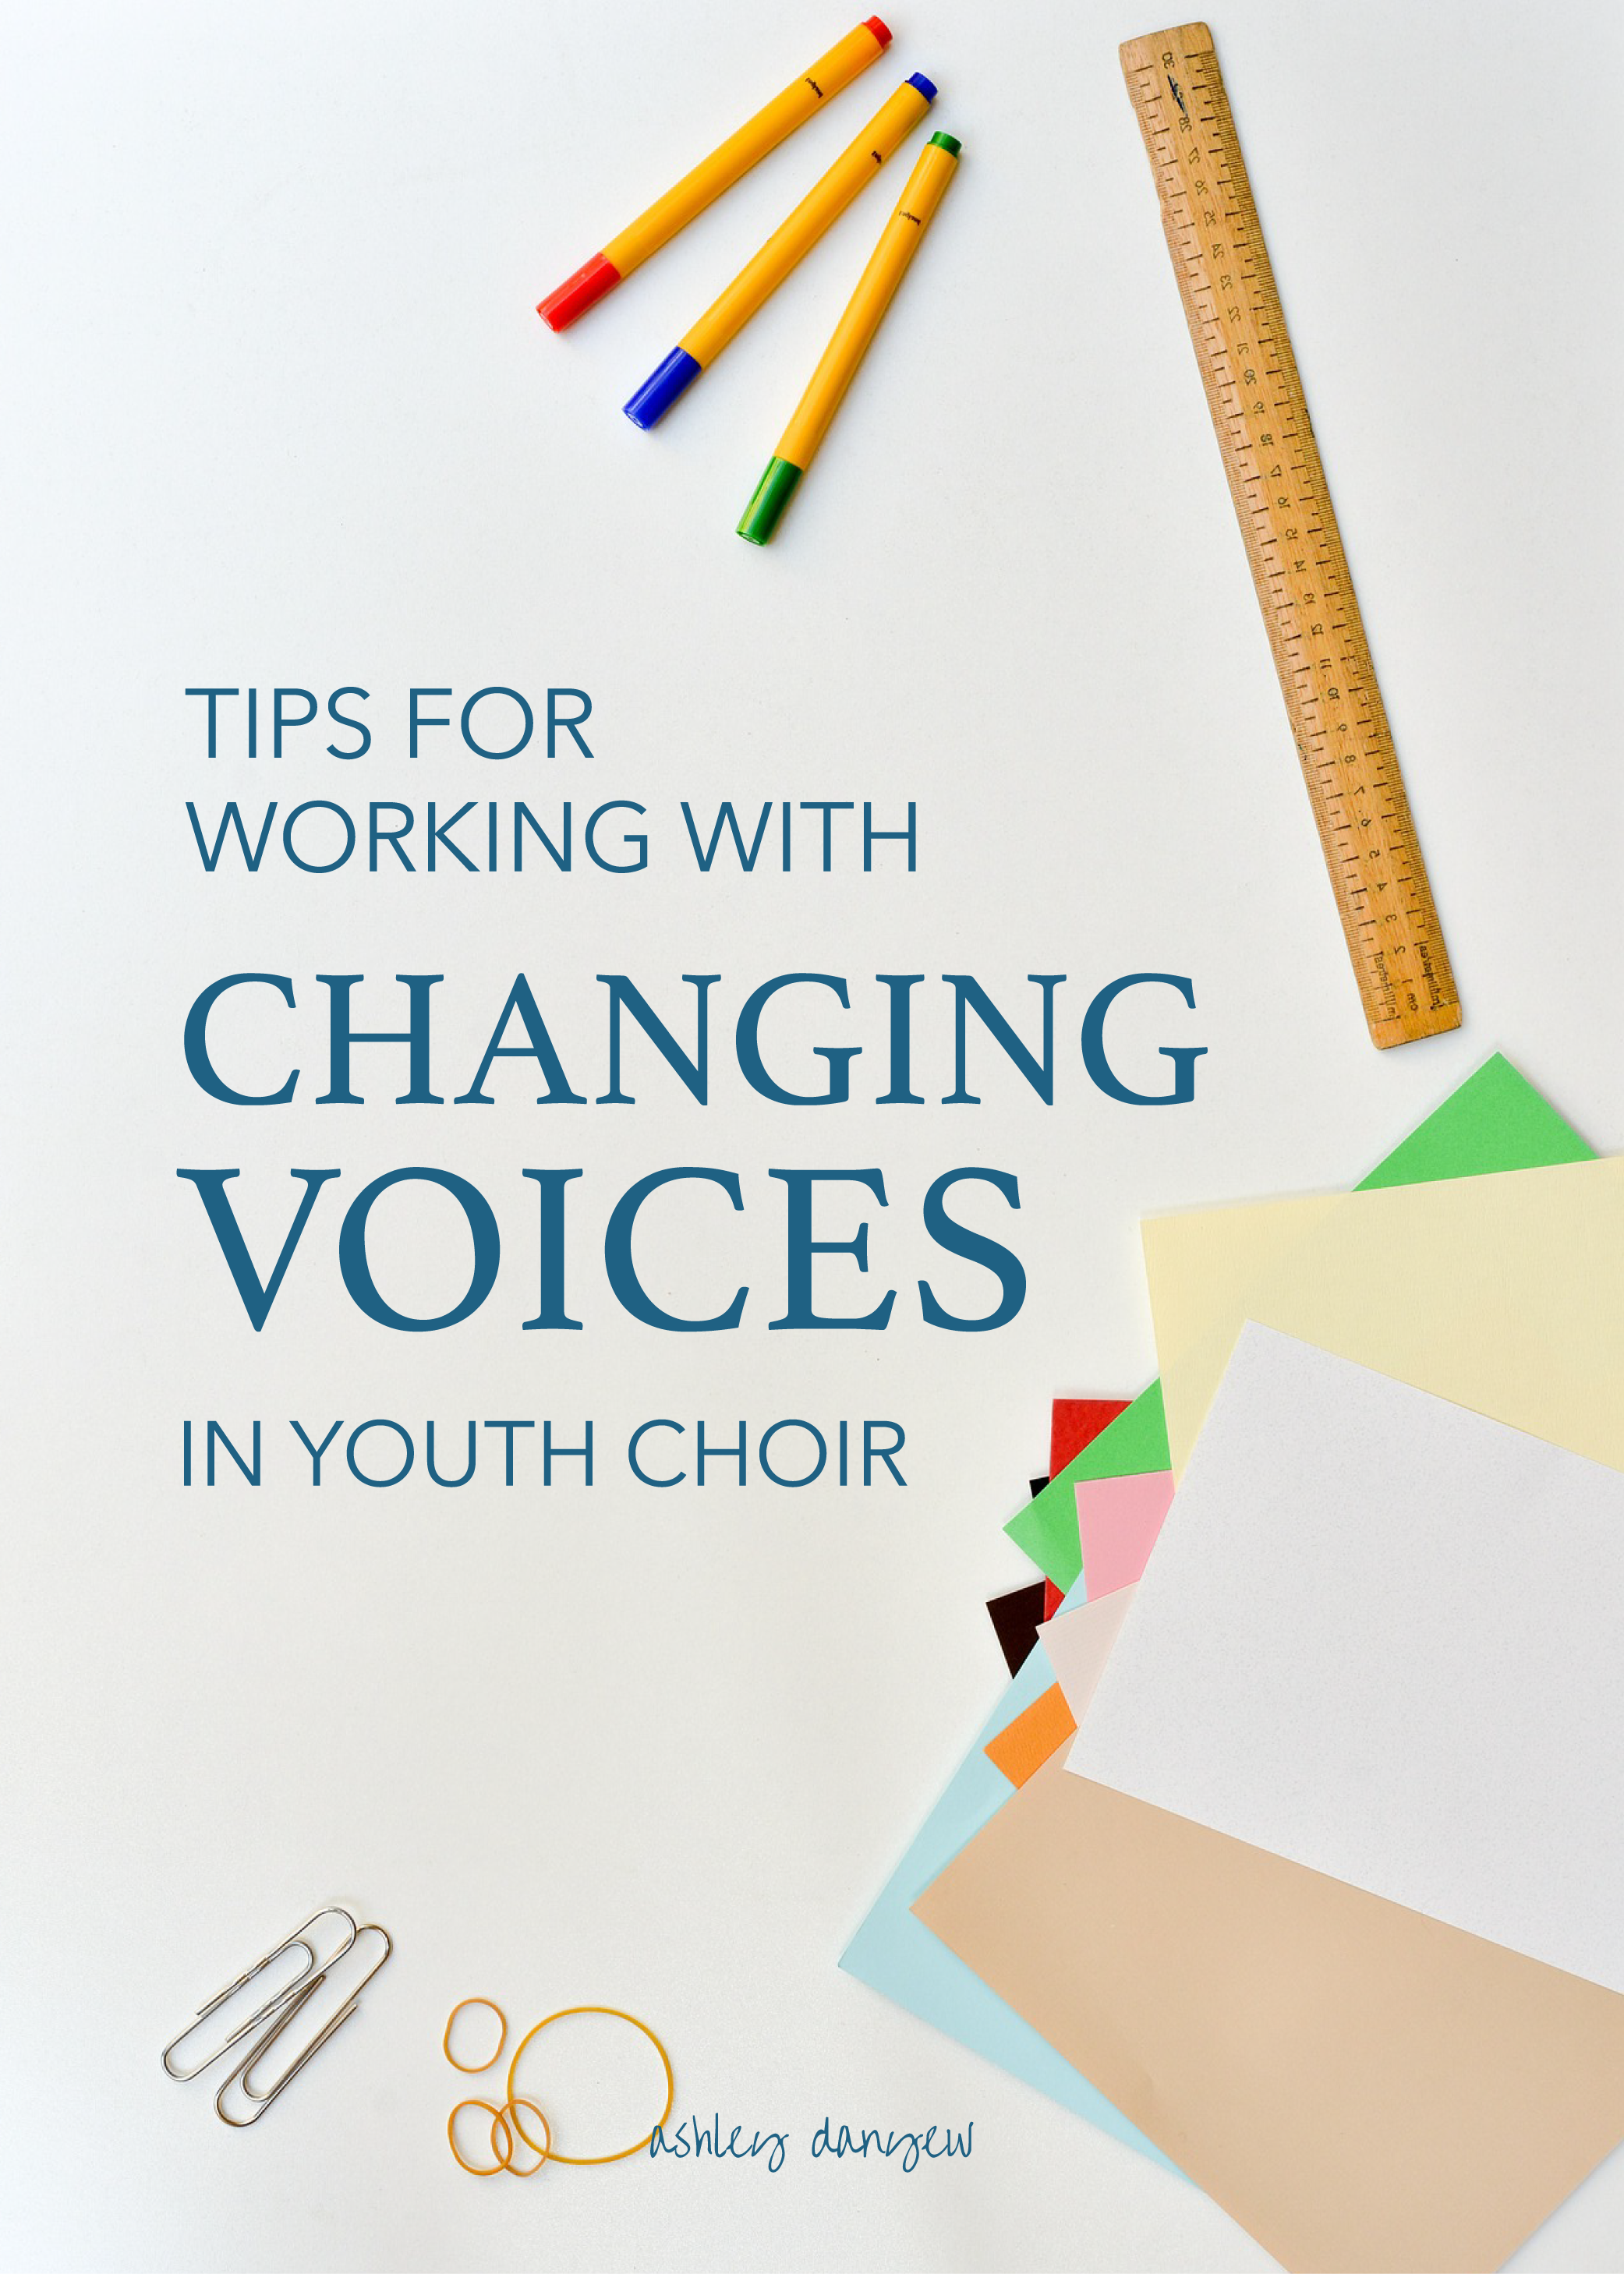 Tips for Working with Changing Voices in Youth Choir-01.png